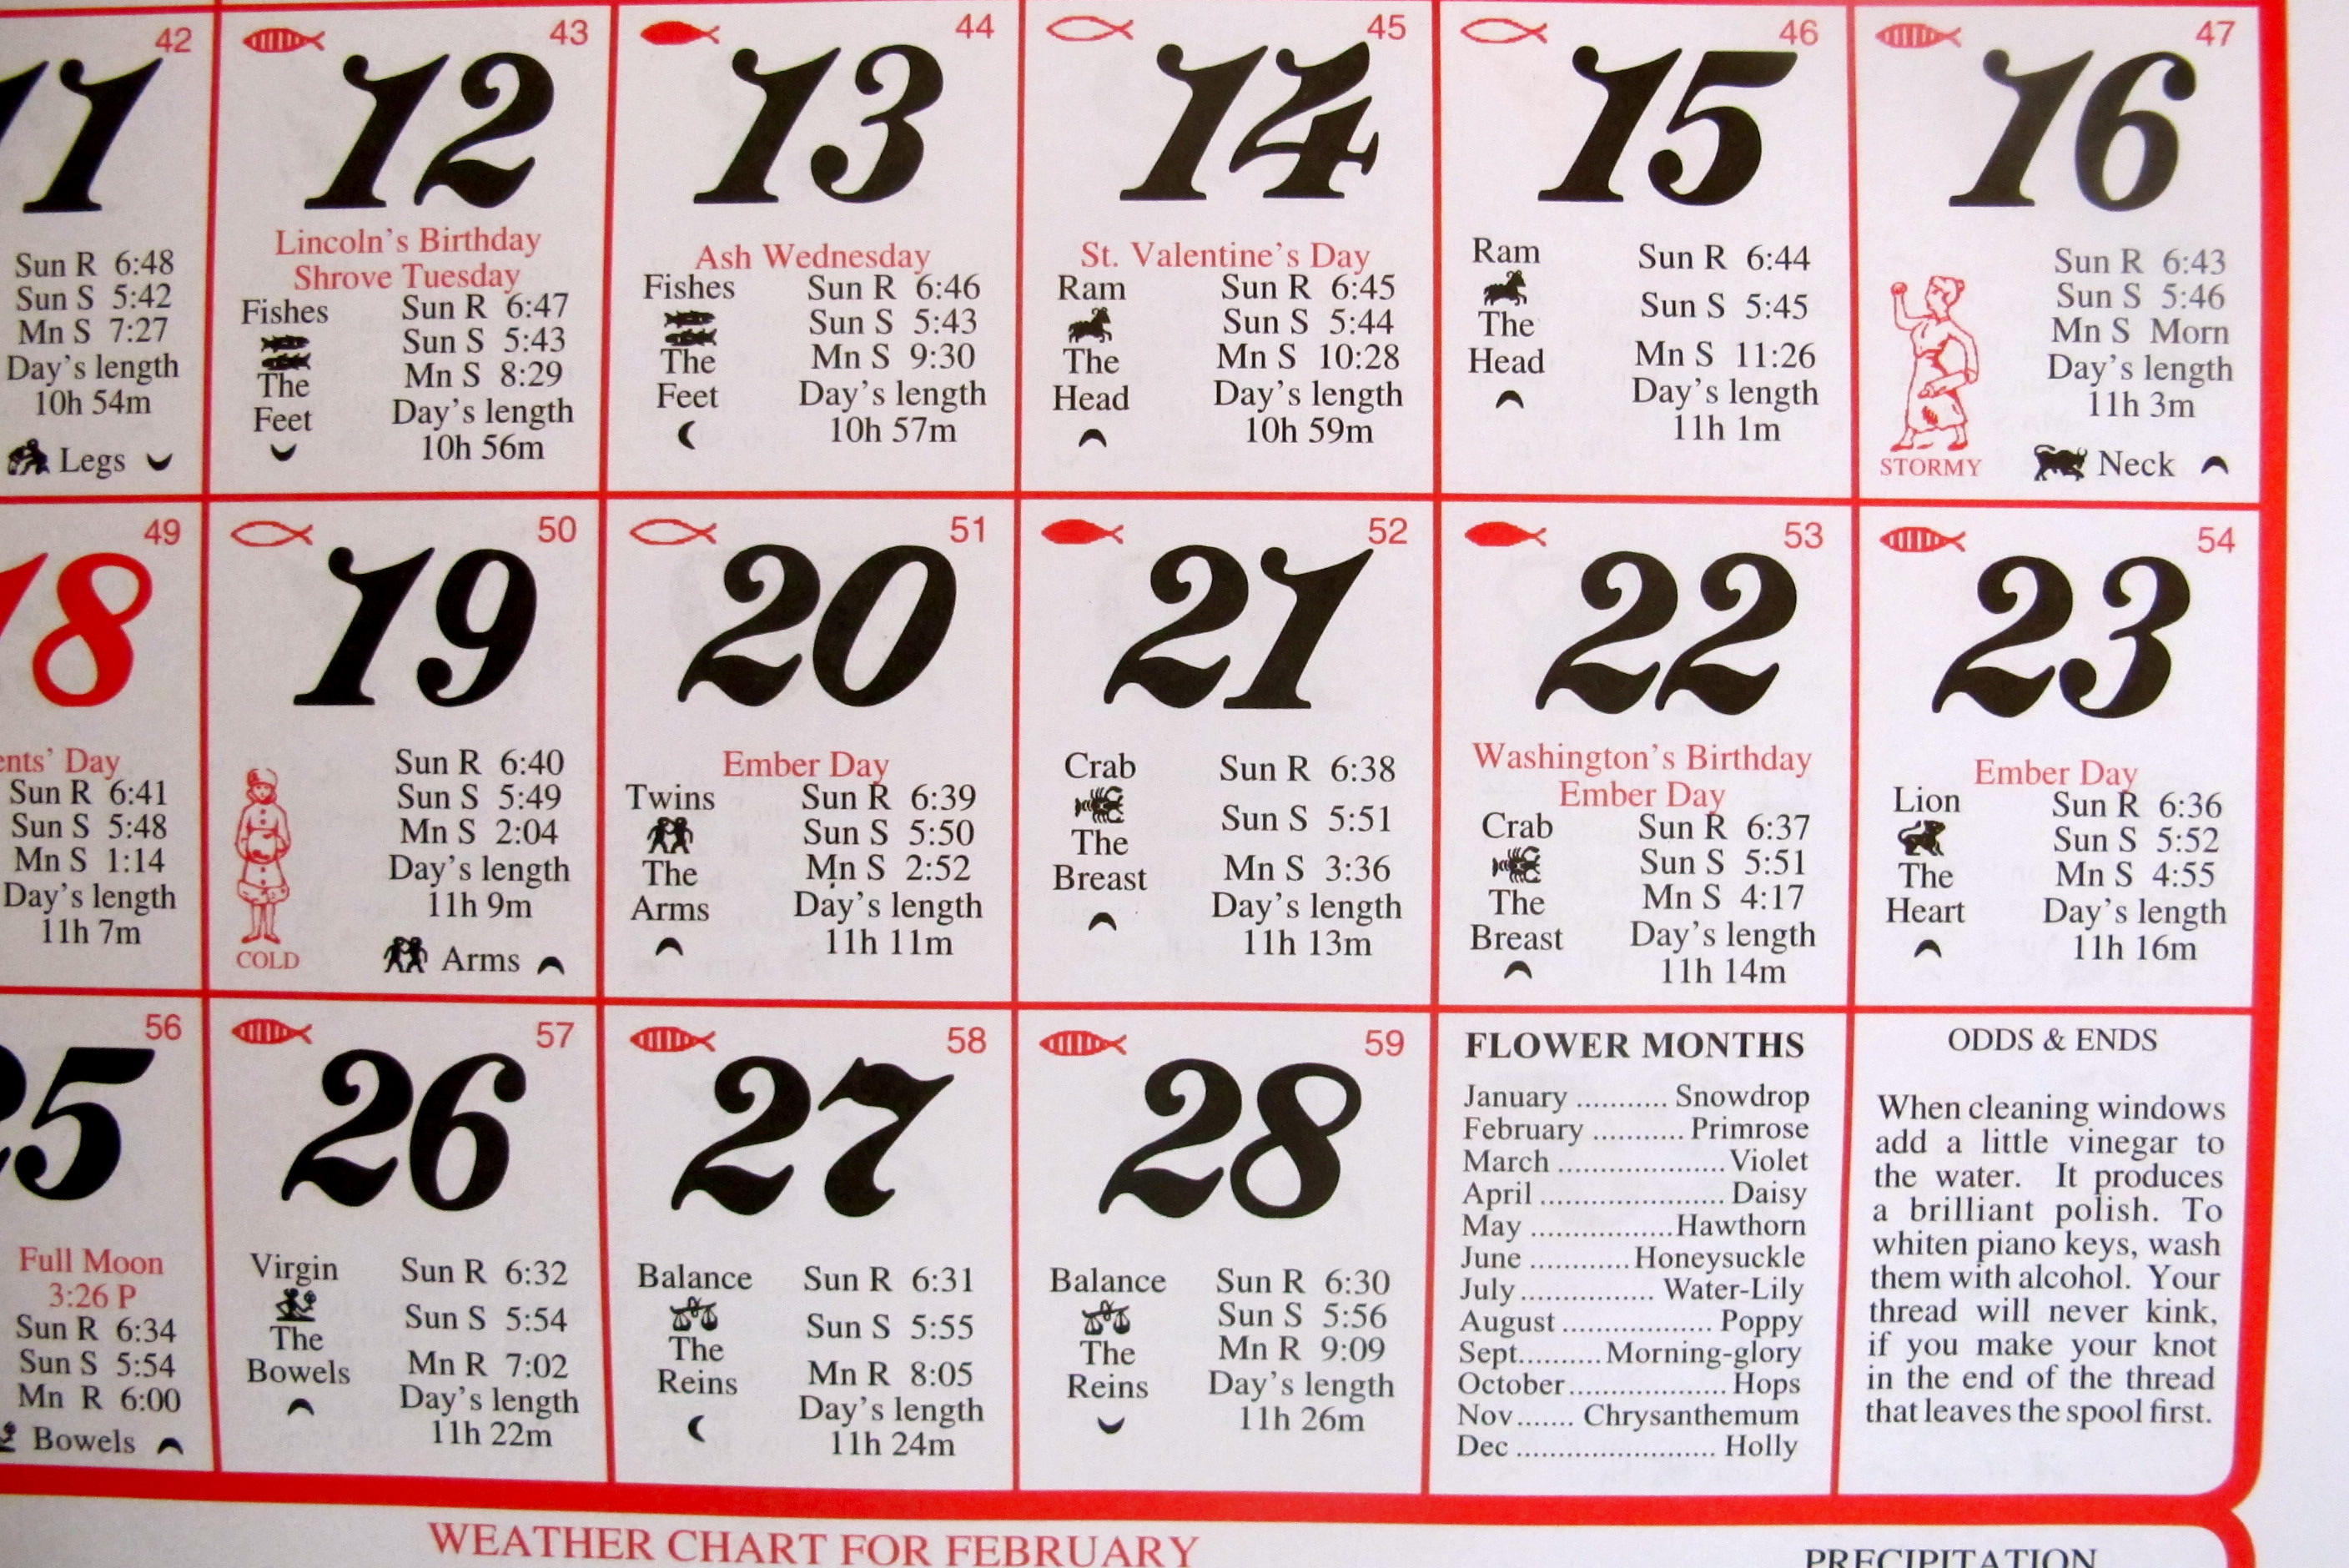 Almanac calendar feather by feather for Farmers almanac fishing calendar